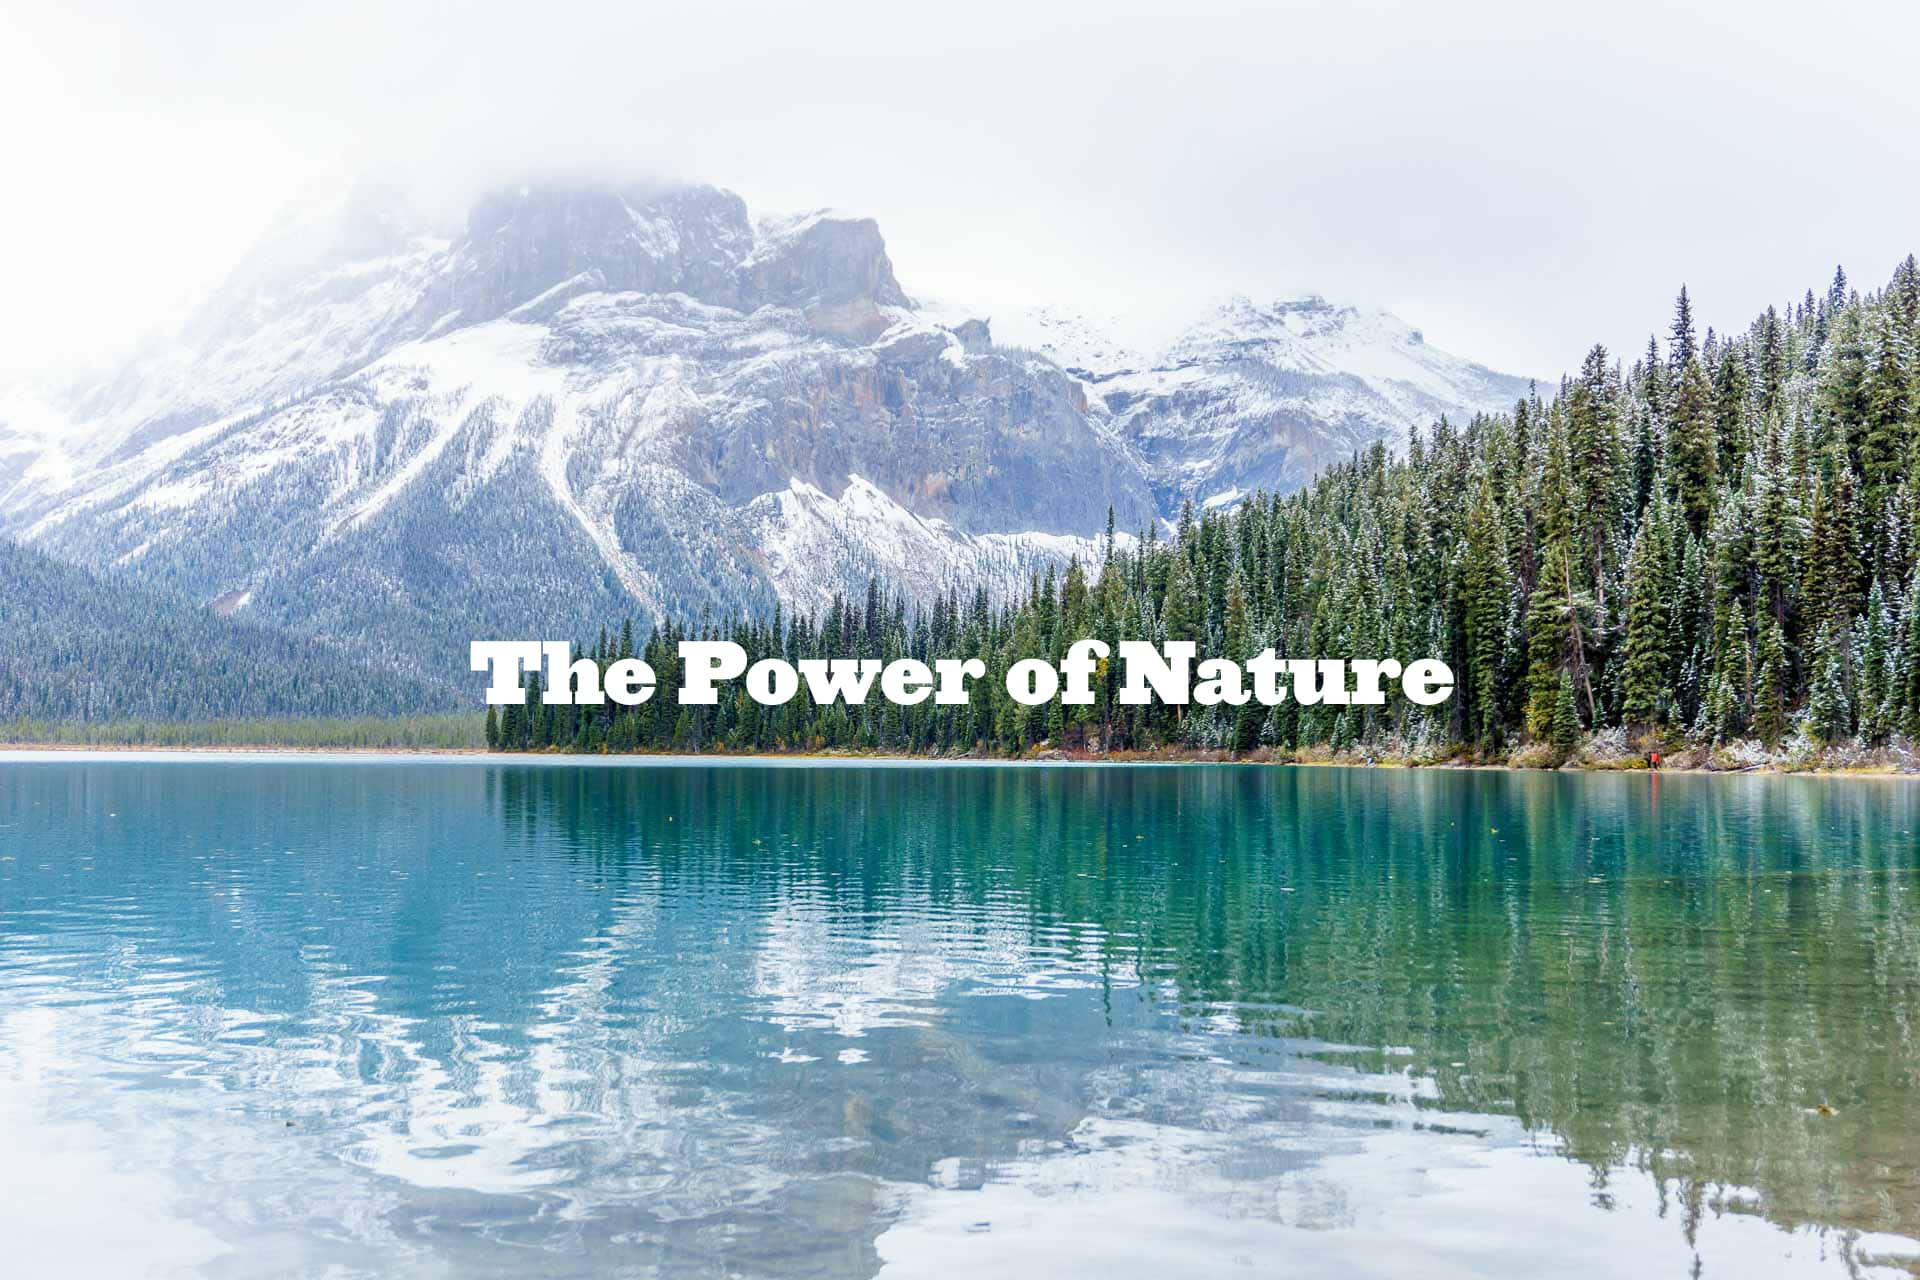 The Power of Nature